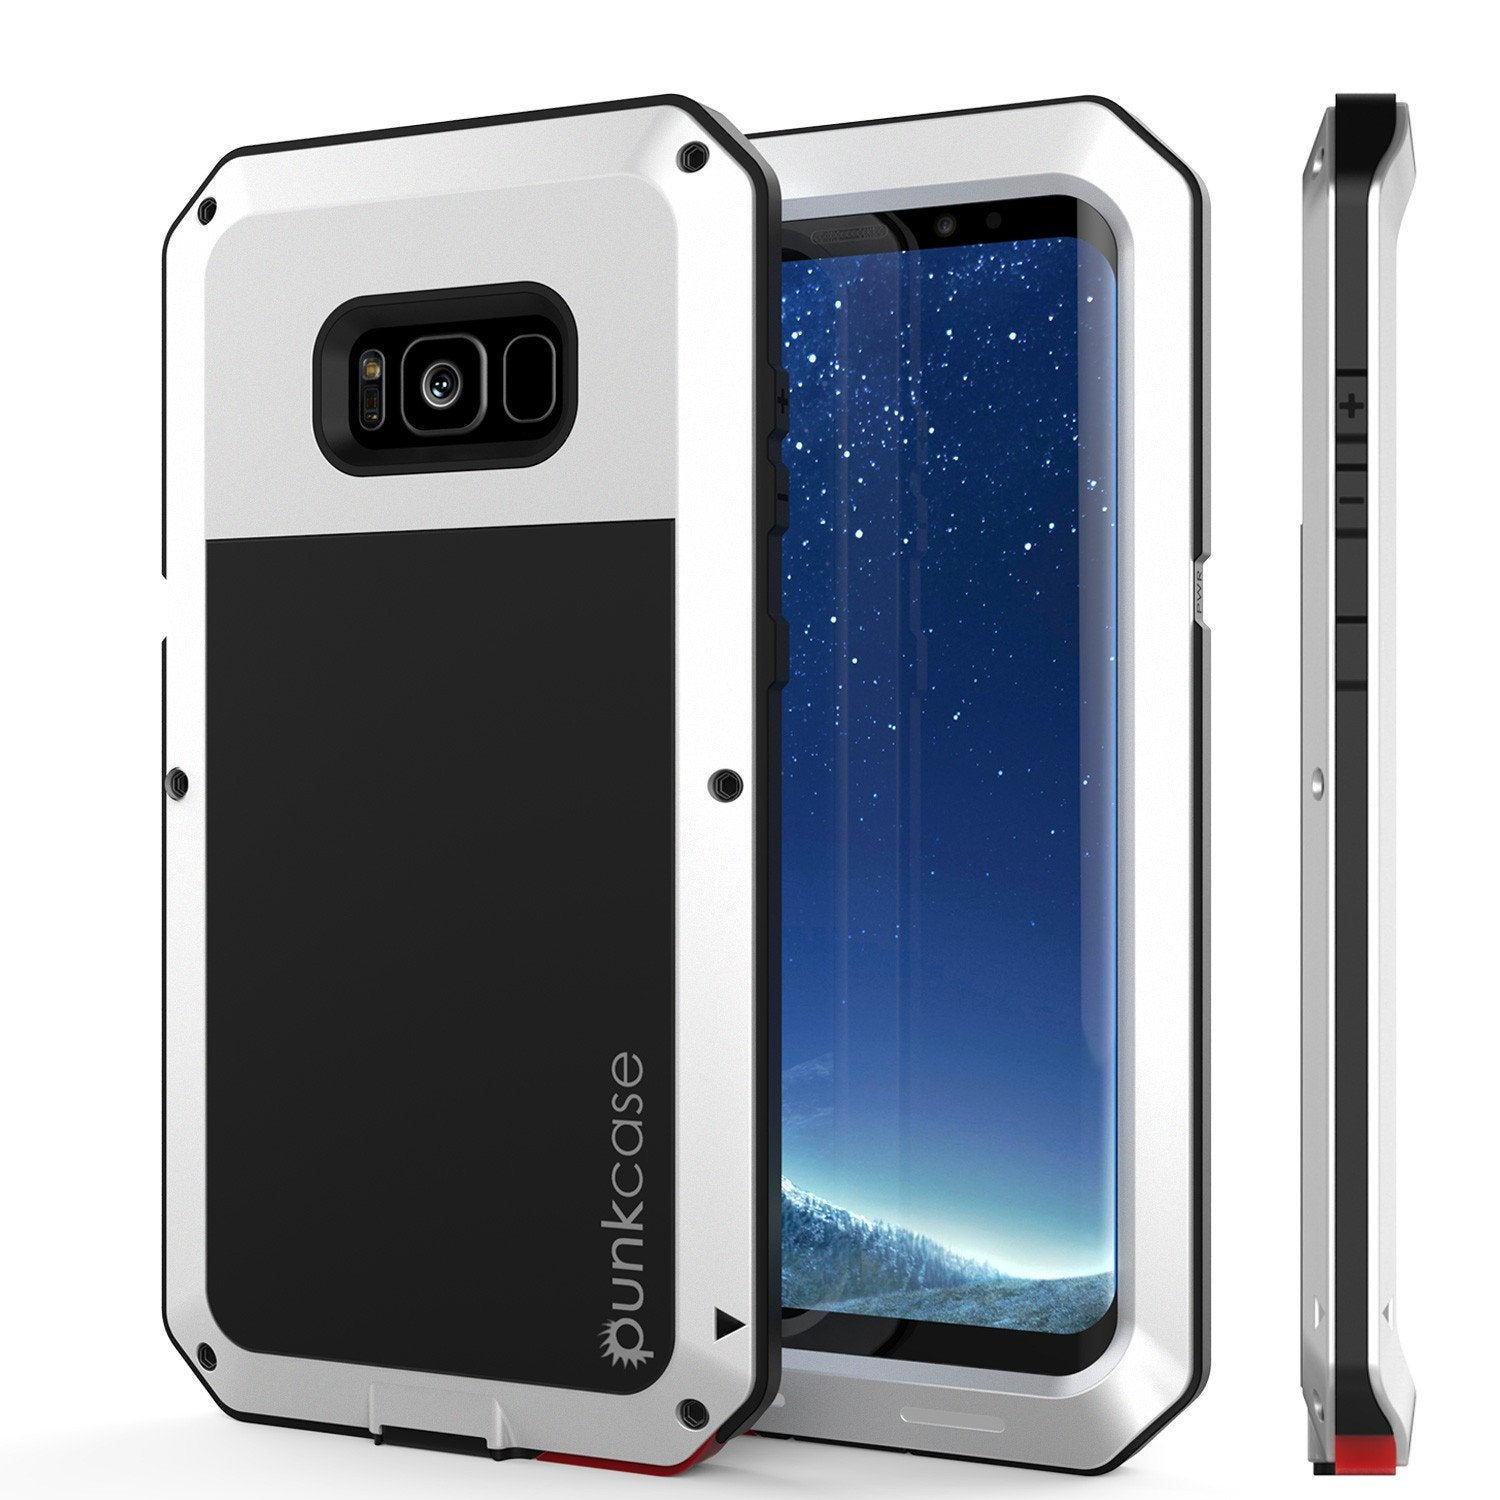 Galaxy S8+ Plus Metal Case, Heavy Duty Military Grade Rugged Armor Cover [shock proof] W/ Prime Drop Protection [WHITE]